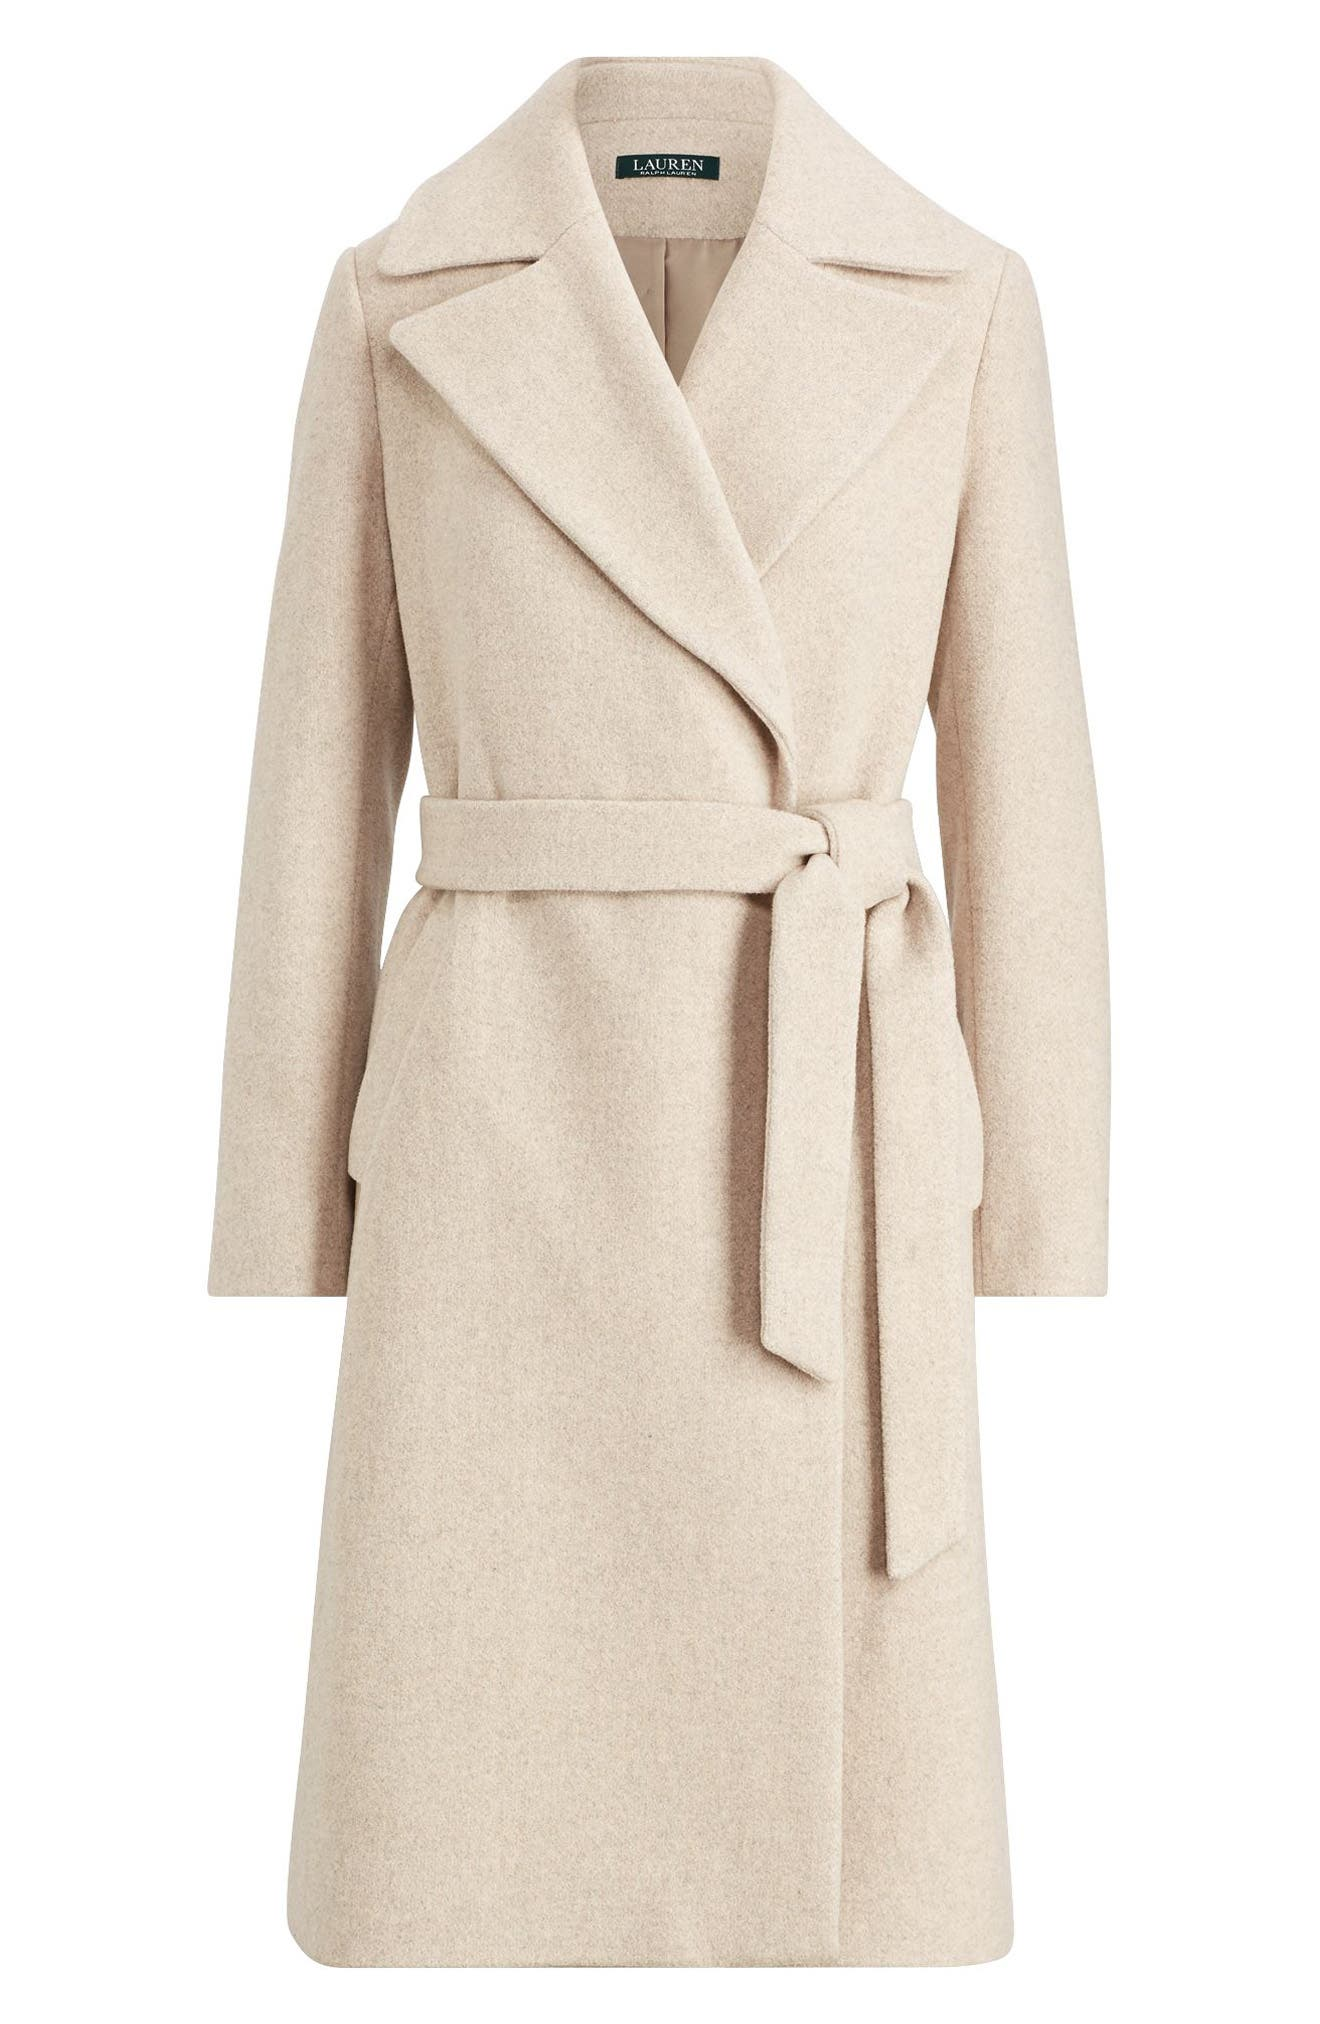 LAUREN RALPH LAUREN,                             Wool Blend Wrap Coat,                             Alternate thumbnail 3, color,                             PLATINUM HEATHER